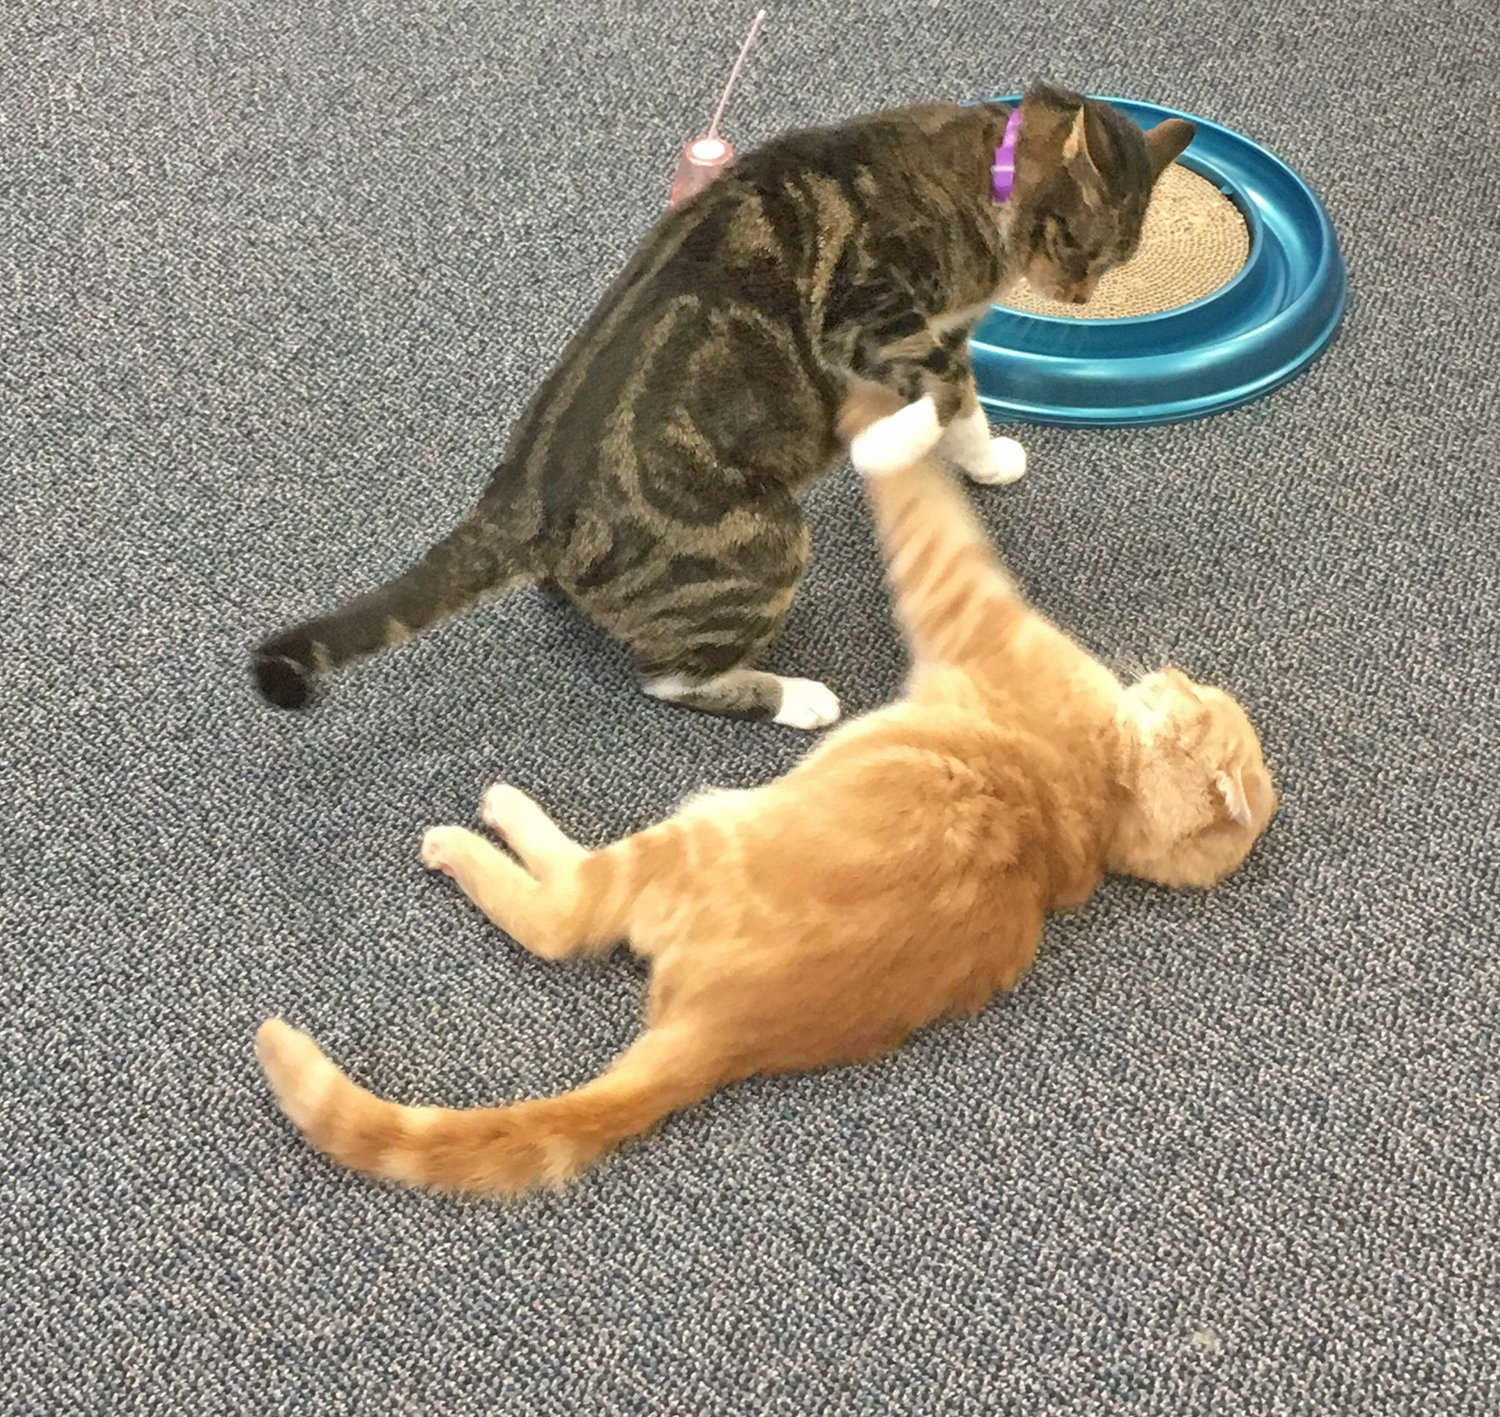 PLAY TIME — Despite his disability, Wheelie the Cat enjoys some play time with his fellow felines at Clinton Pet Vet Rescue and Sanctuary on Dwight Avenue.  The rescue is selling calendars to raise money for Wheelie's care, as well as one to support the shelter.